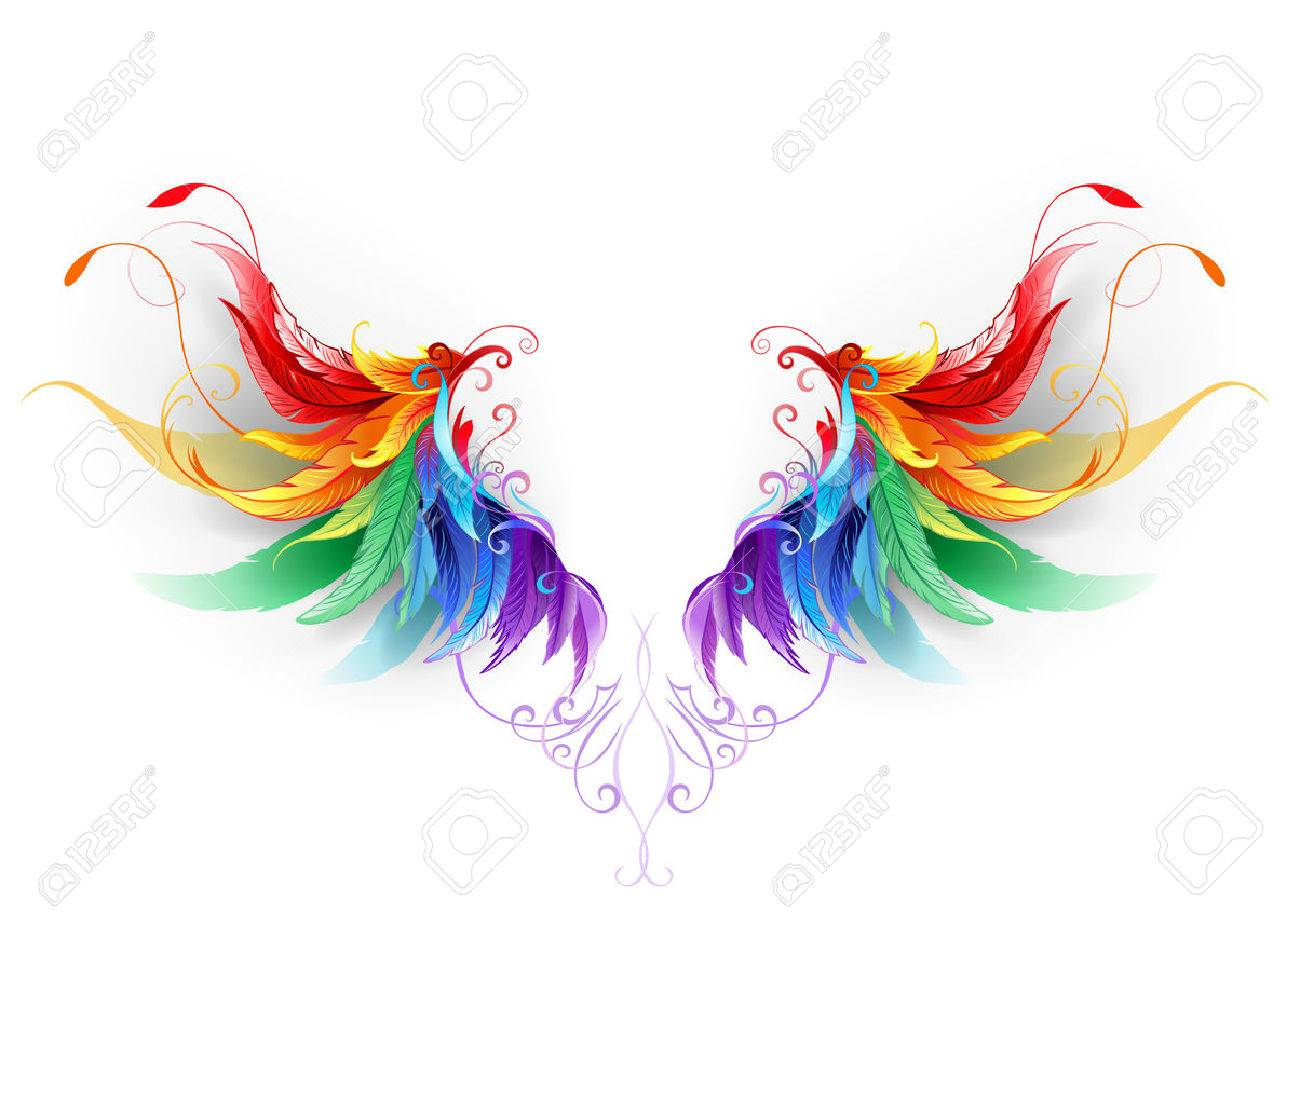 fluffy rainbow wings on a white background. - 53171323